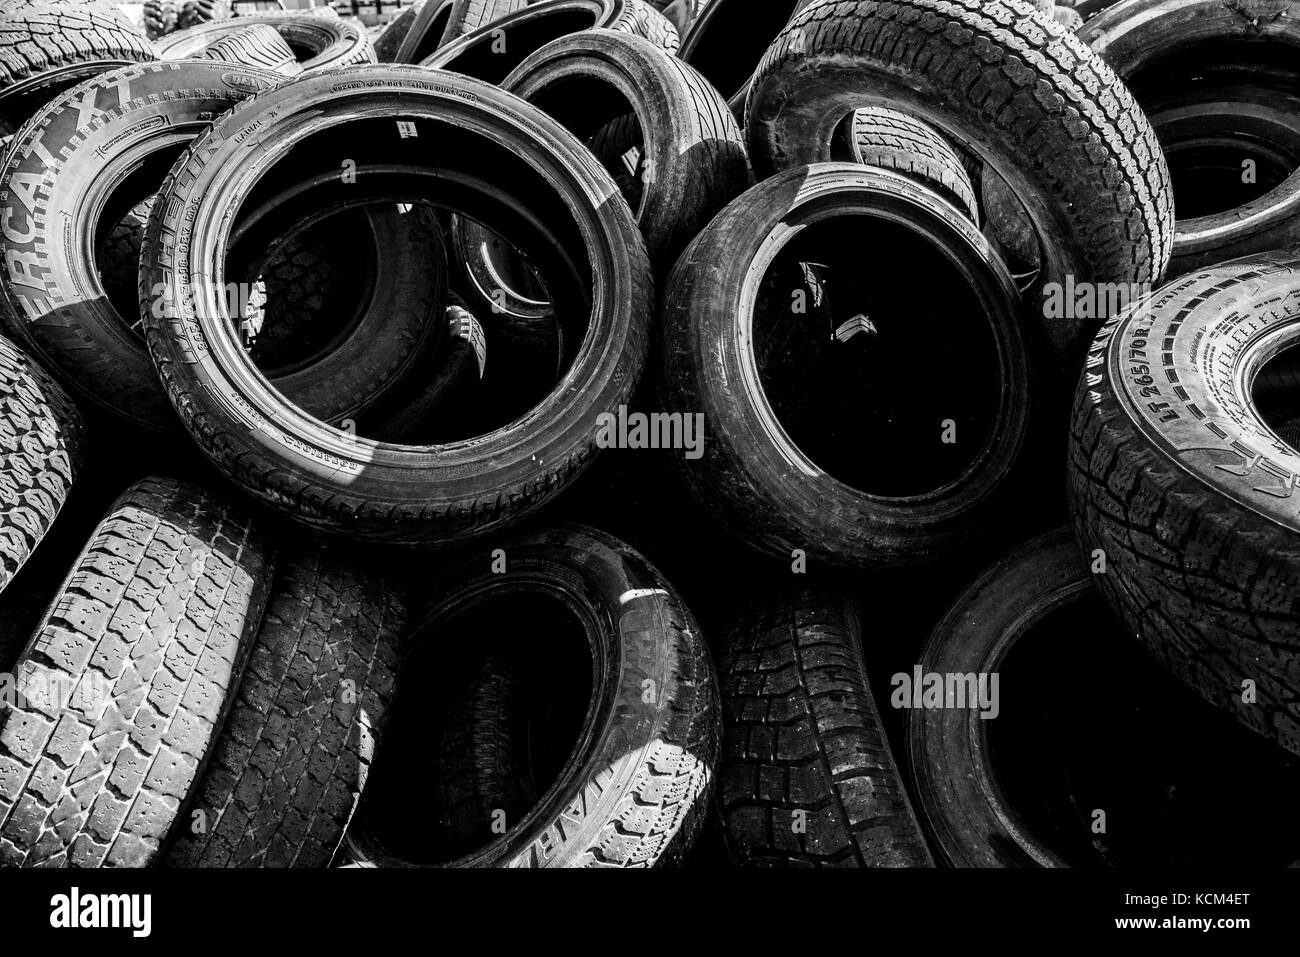 Pile of used cat tires - Stock Image